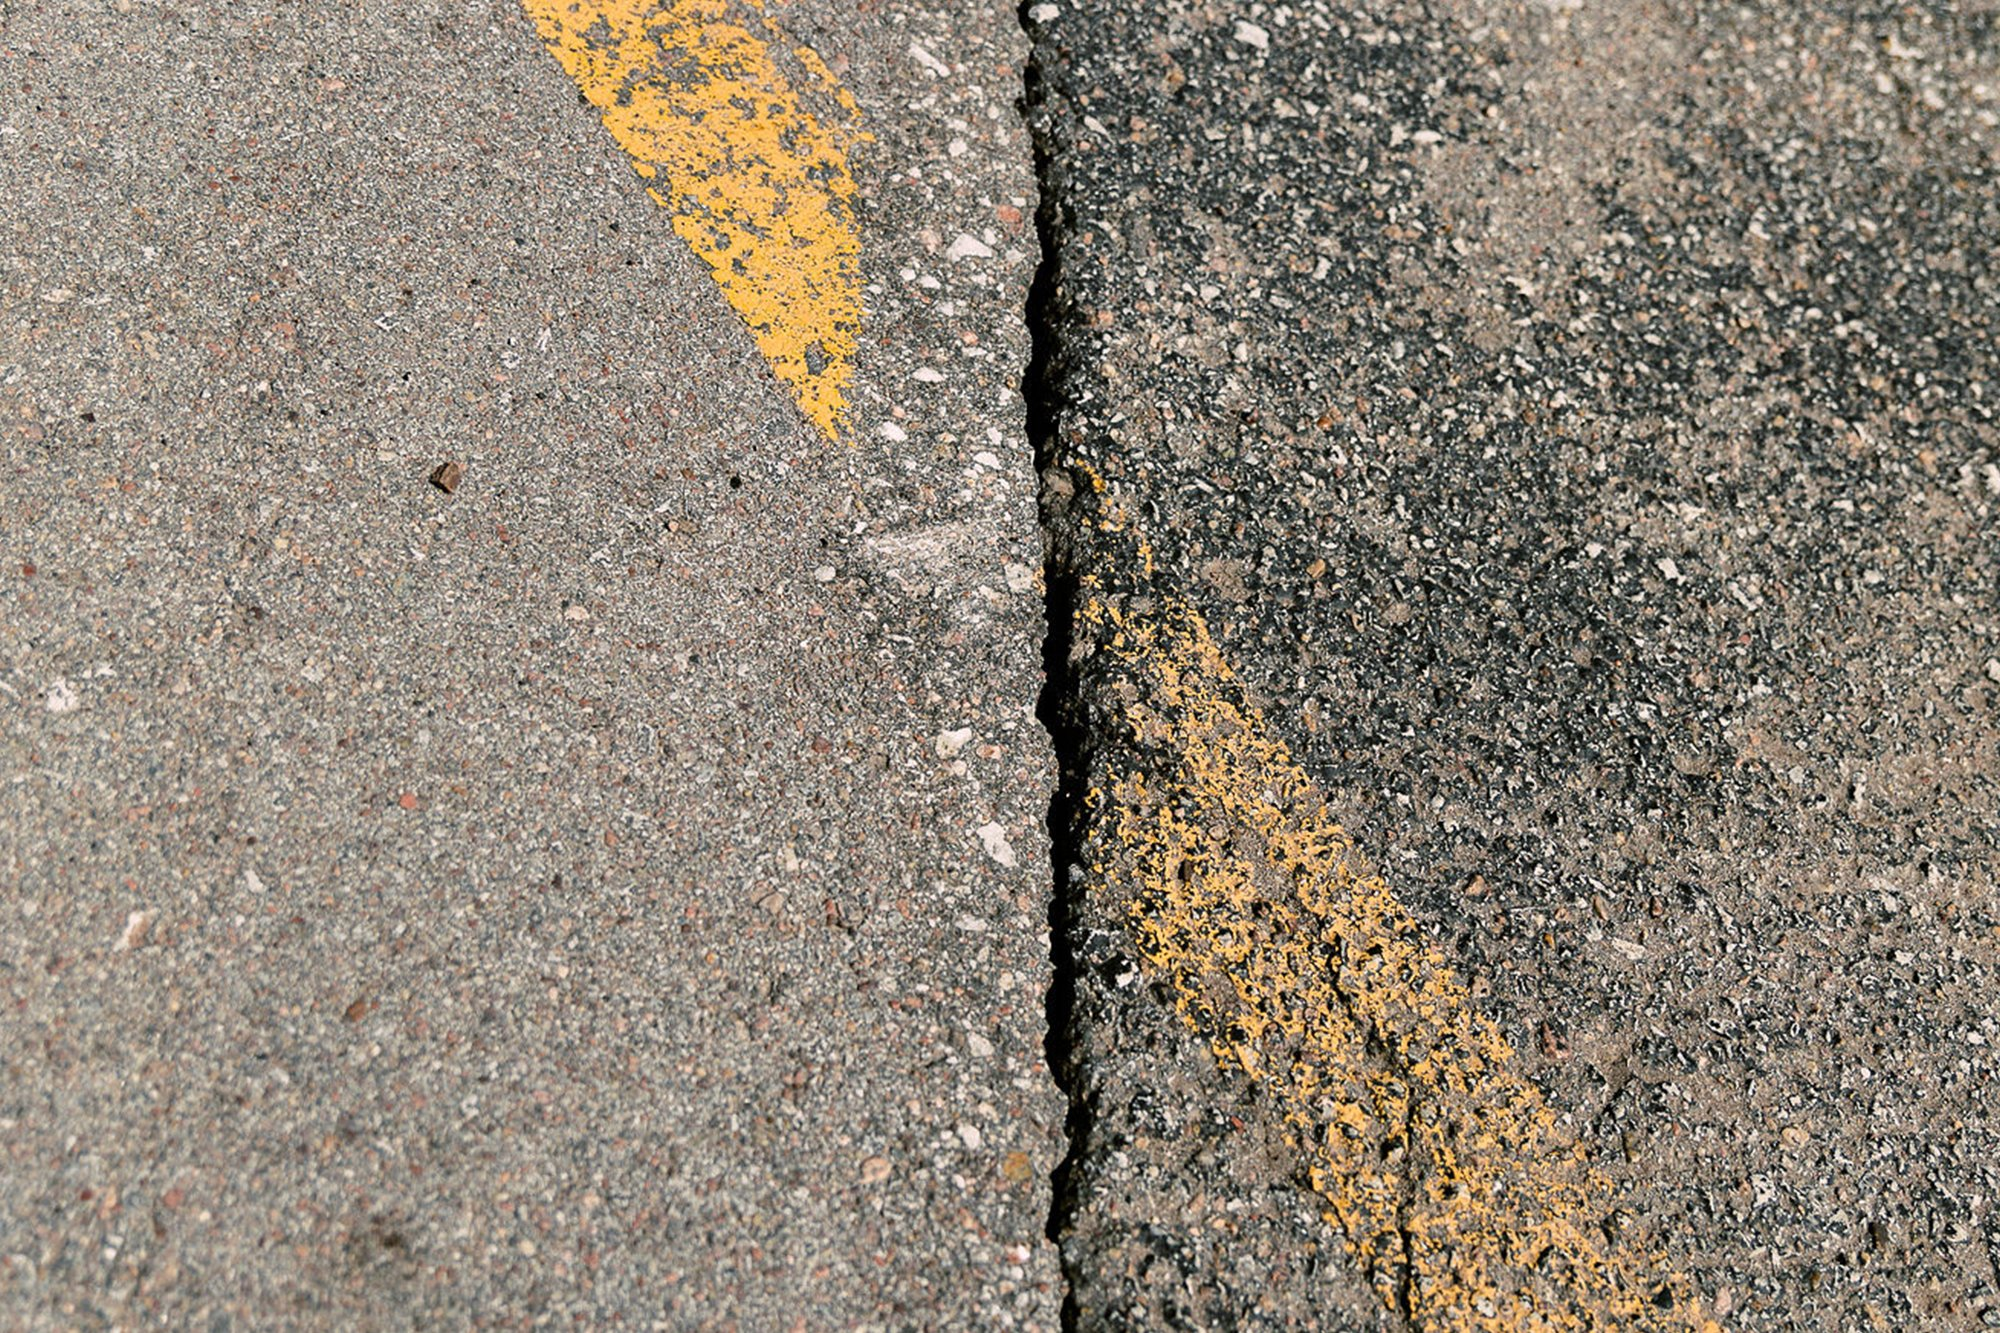 Lincoln Paving and Asphalt Repair crack repair and sealing home feature - APMS Lincoln Paving Services